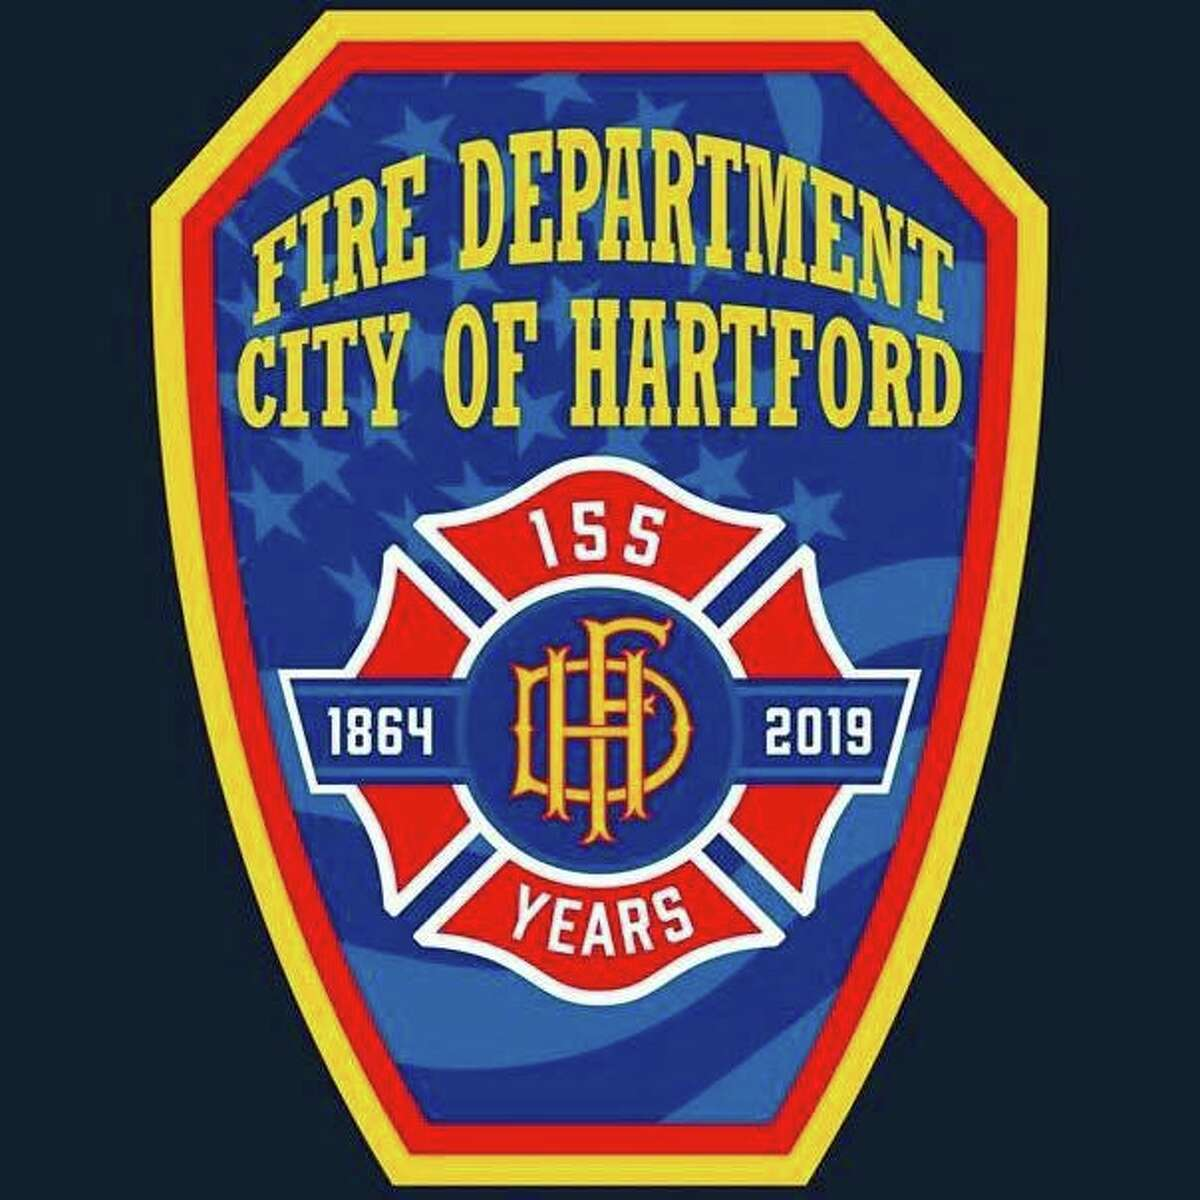 Firefighters battled a two-alarm blaze at a multi-unit apartment complex in the South End on Christmas Day, officials said. The fire at the 100 Benton St. apartments broke out around 9 p.m. and quickly escalated into a two-alarm blaze. While fighting that blaze, another fire broke out at a West Raymond Street house